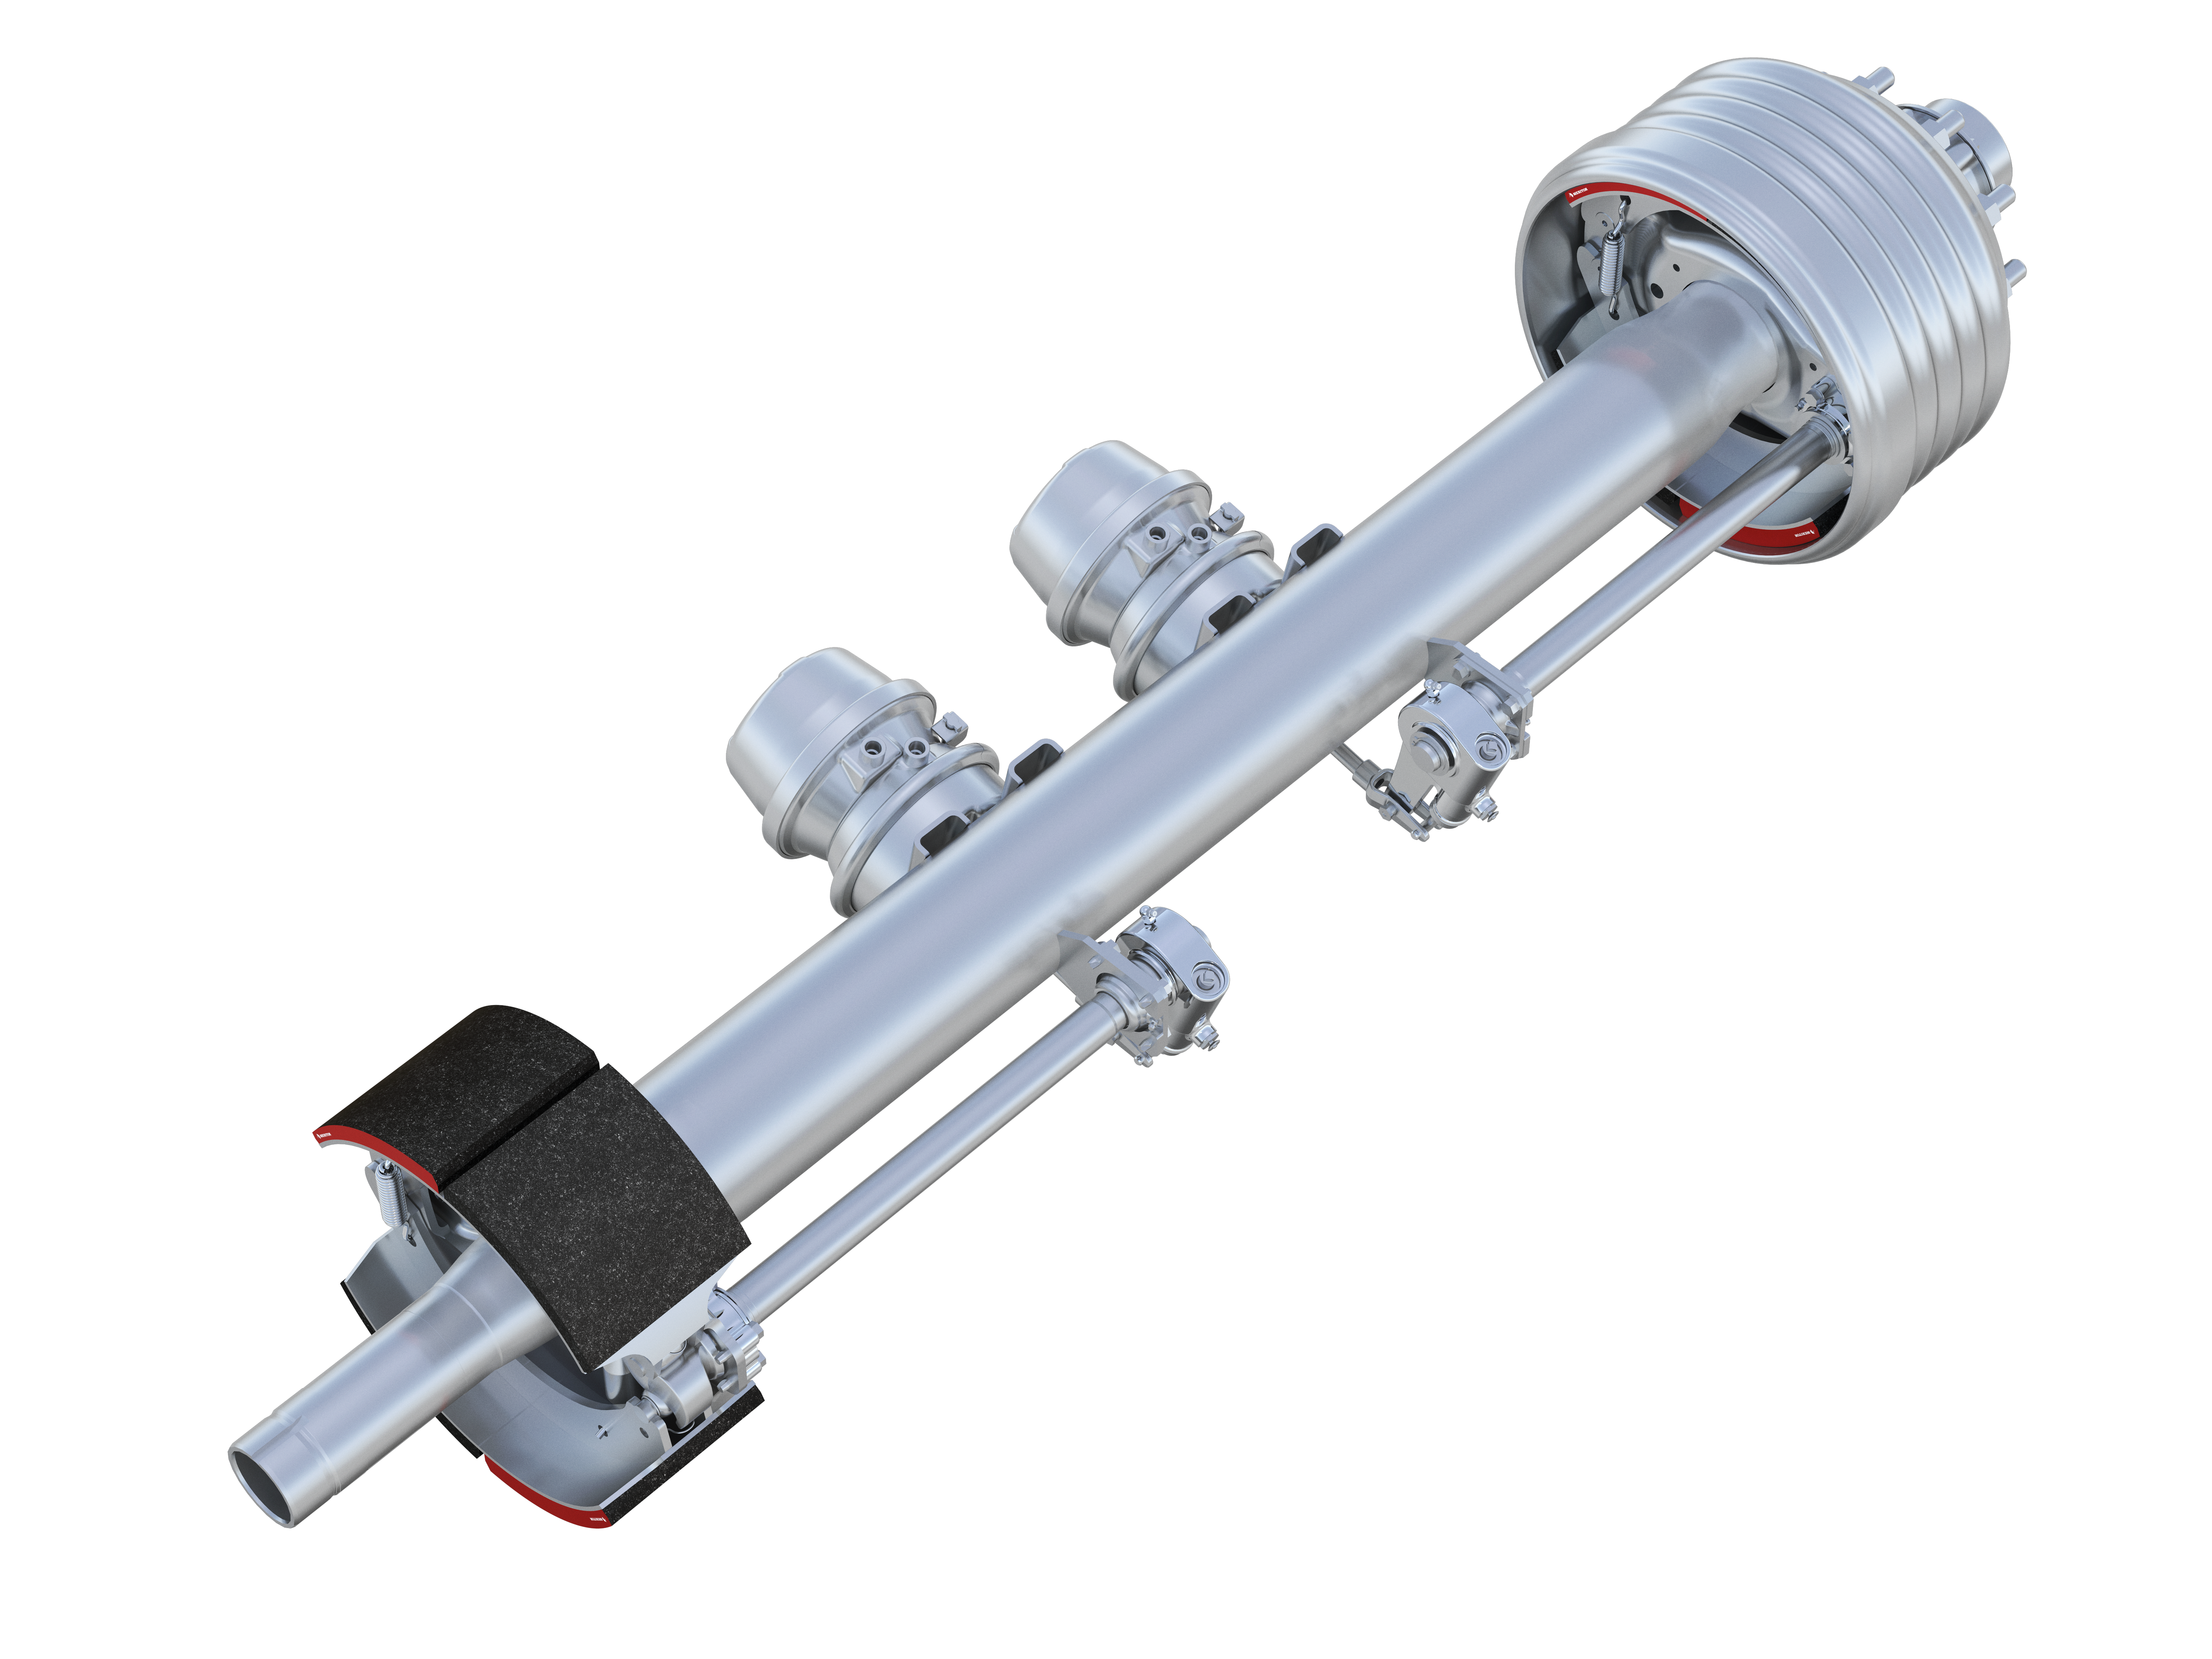 Larger, Lighter But Stronger MTec6 Trailer Axle Coming from Meritor